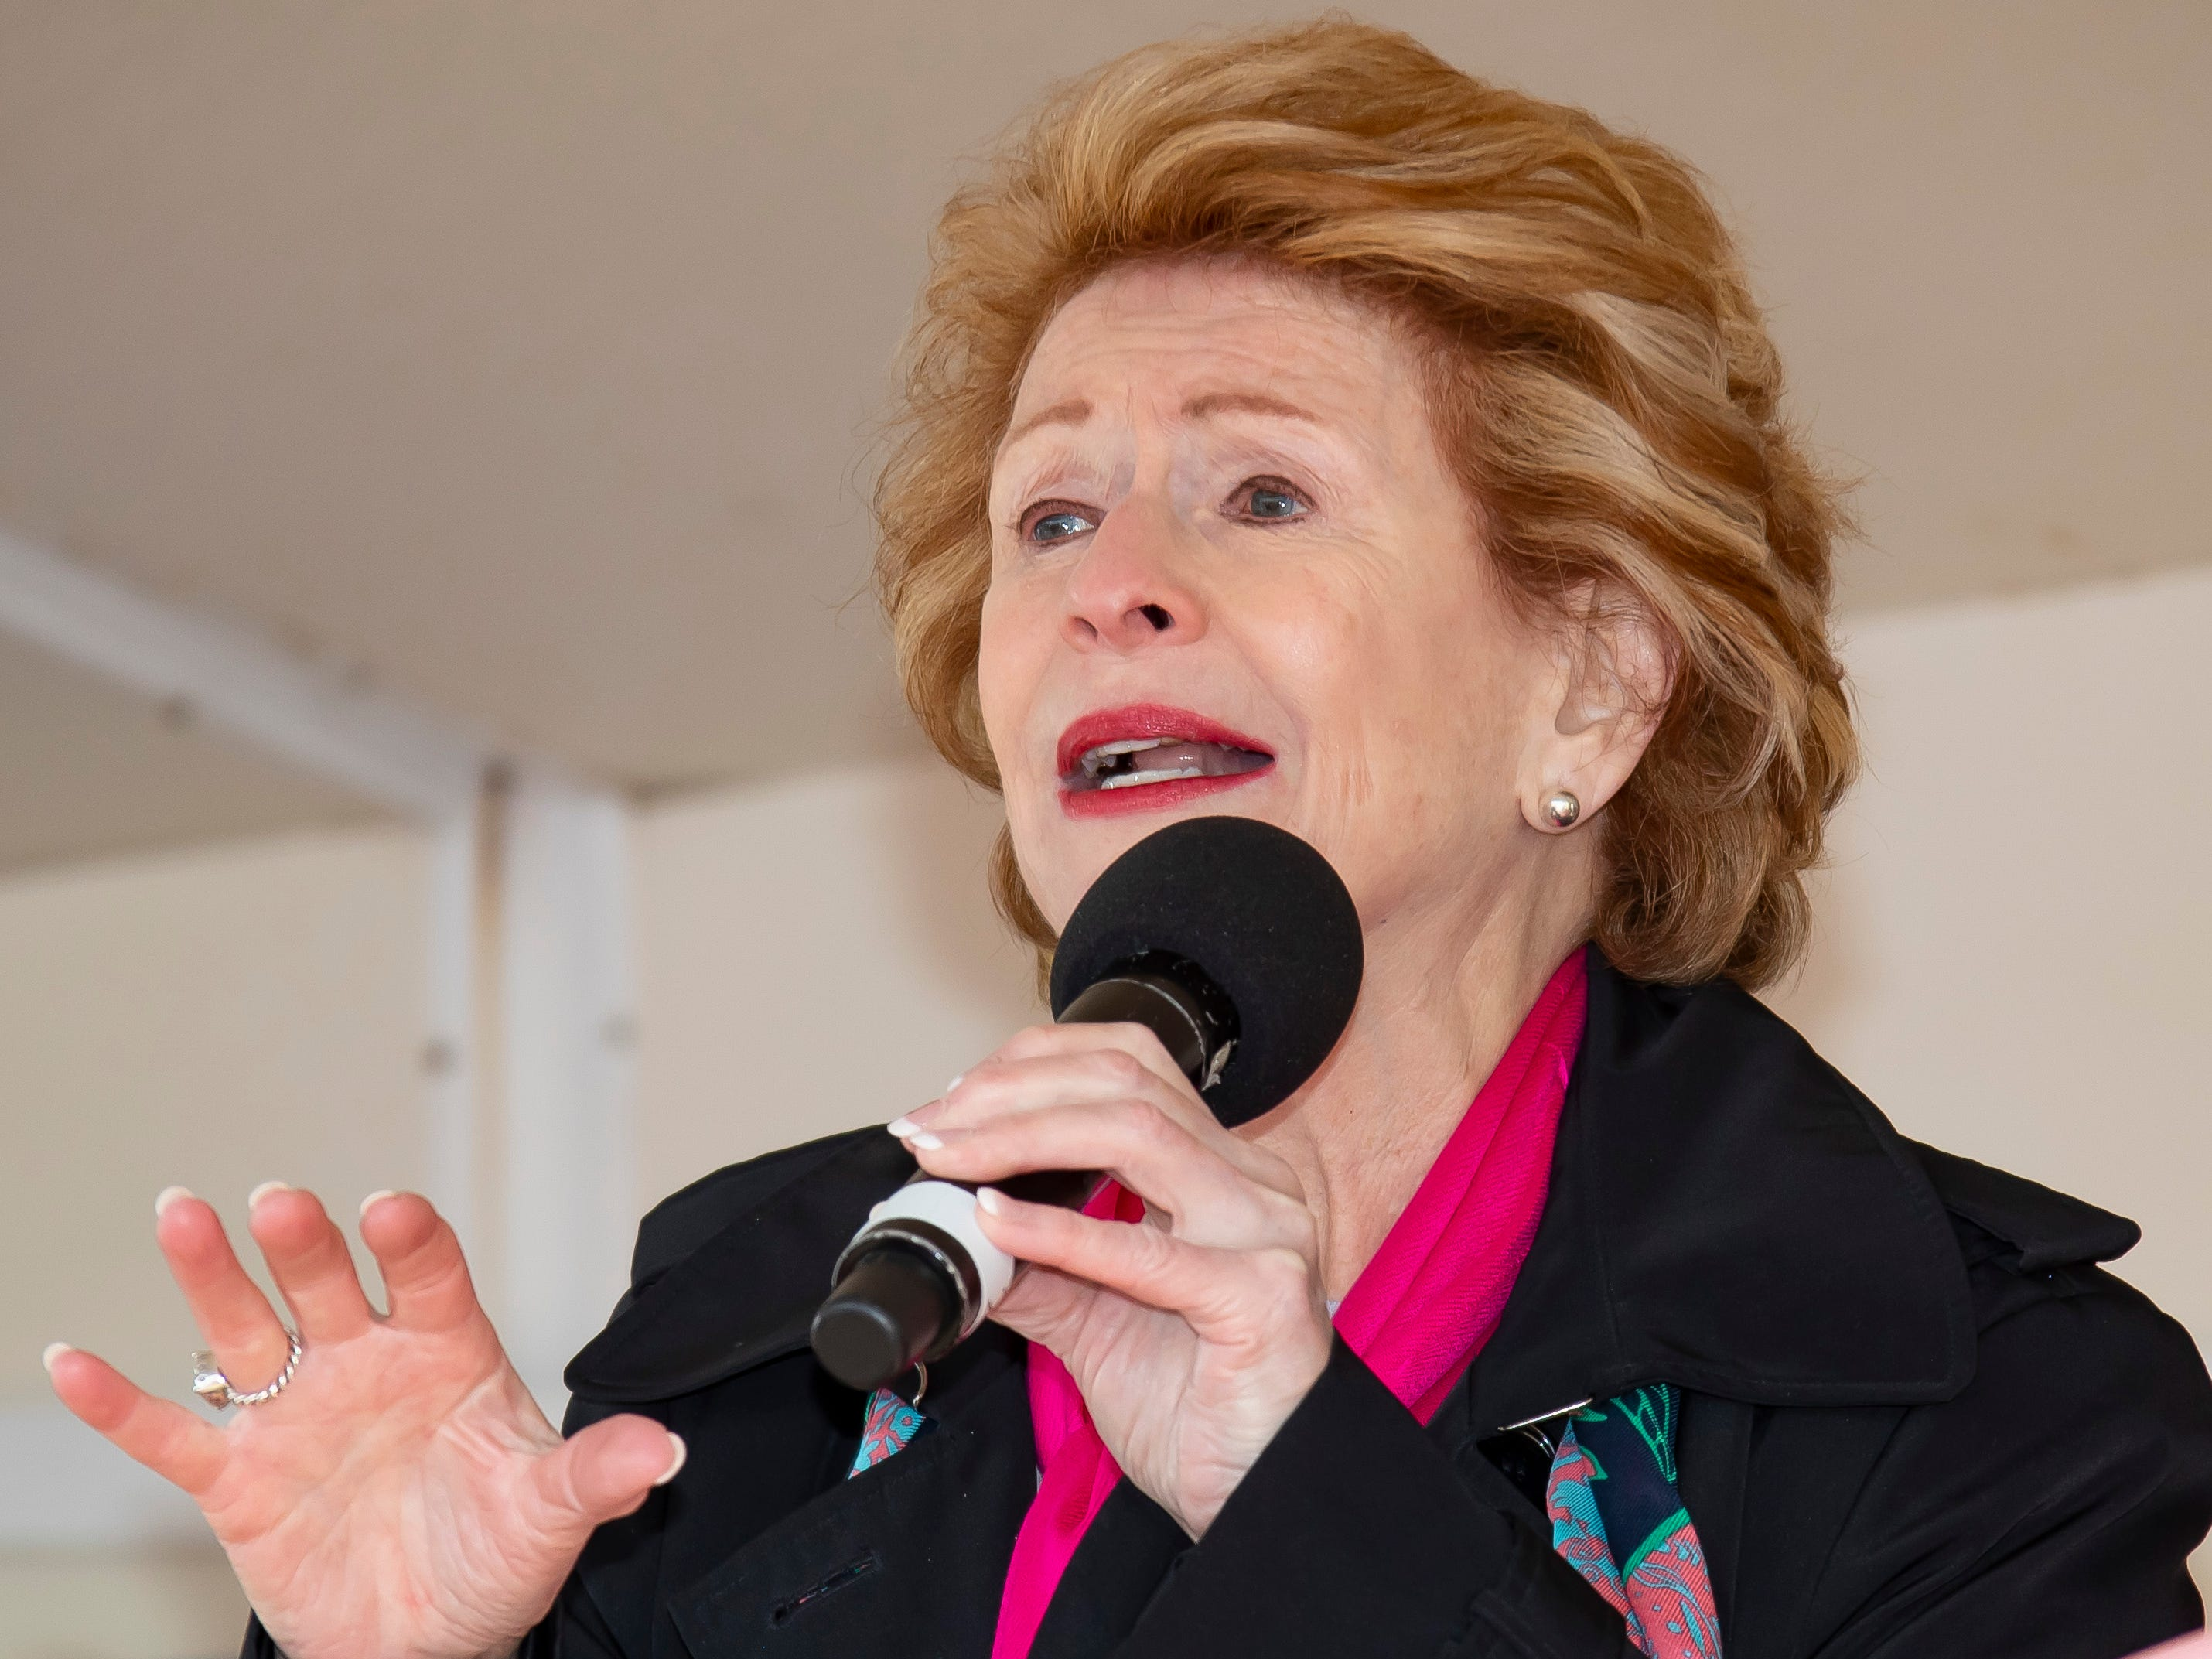 U.S. Senator Debbie Stabenow (D-MI) speaks during the Susan G. Komen Race for the Cure at Comerica Park in Detroit Michigan. (Photo by Dave Reginek-Special to Detroit News)